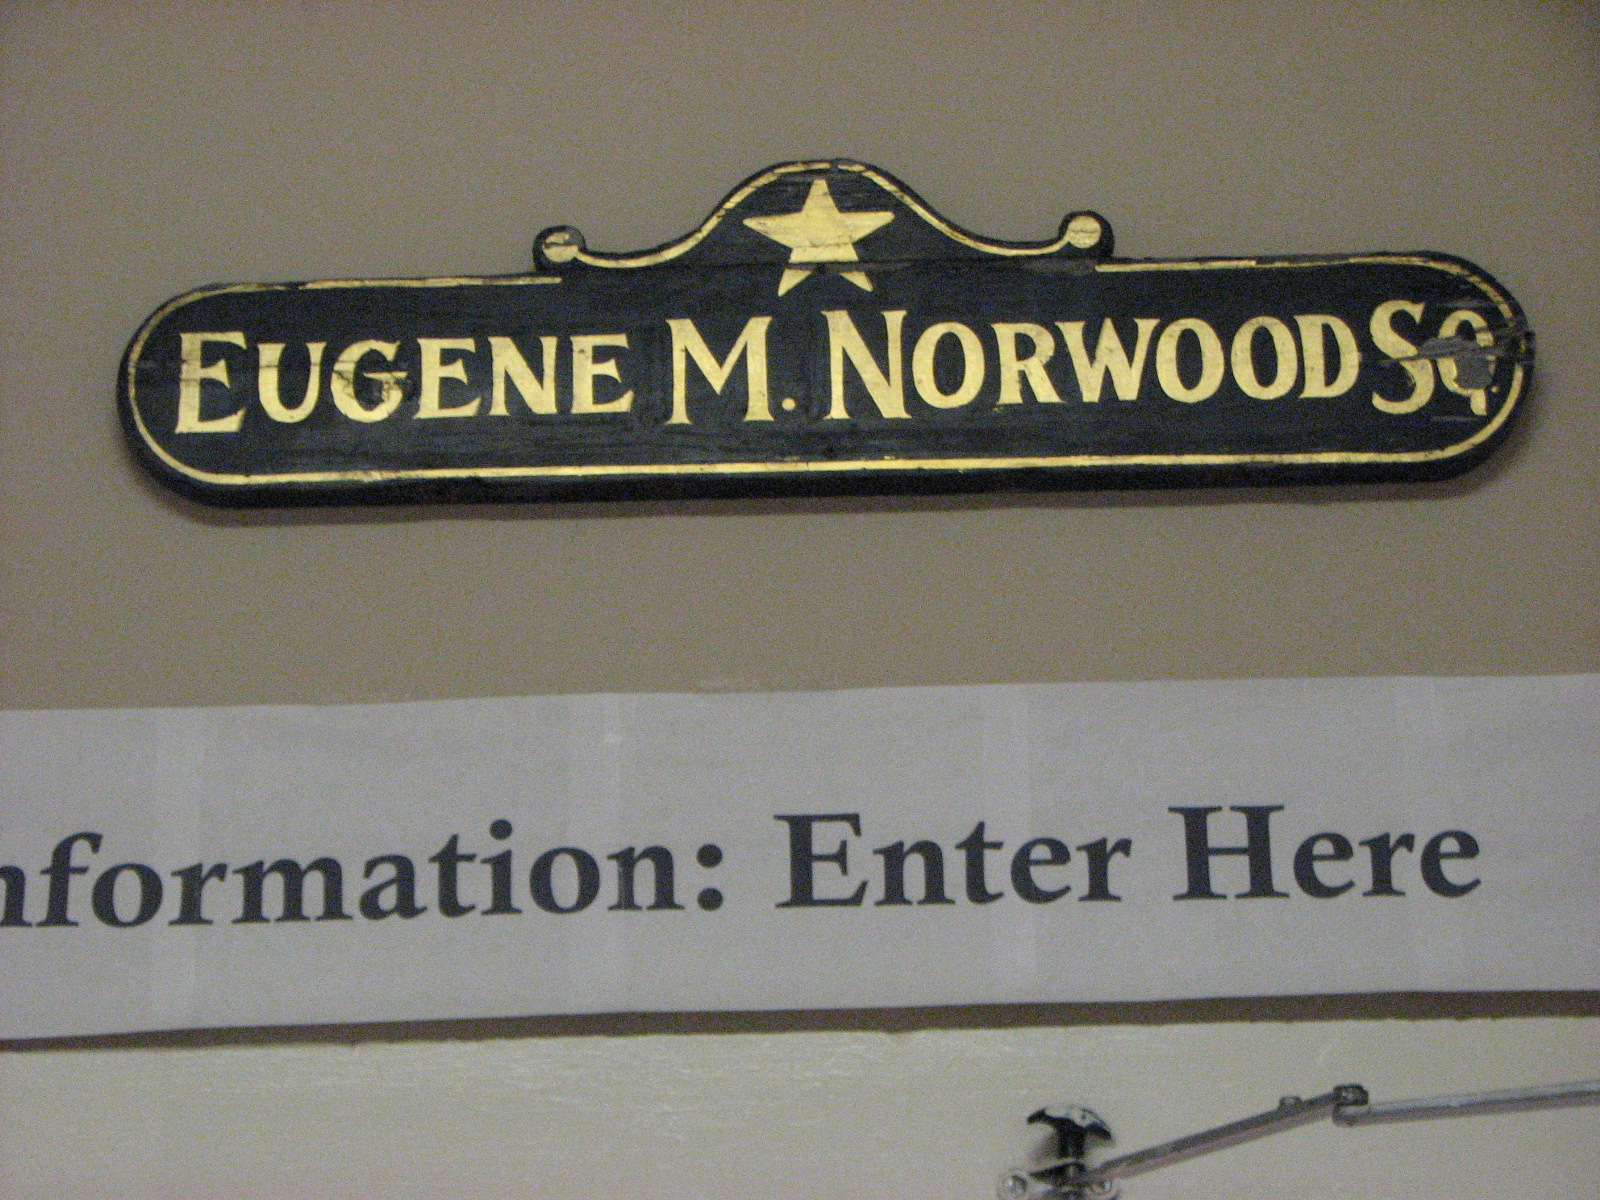 Eugene M. Norwood Square sign.